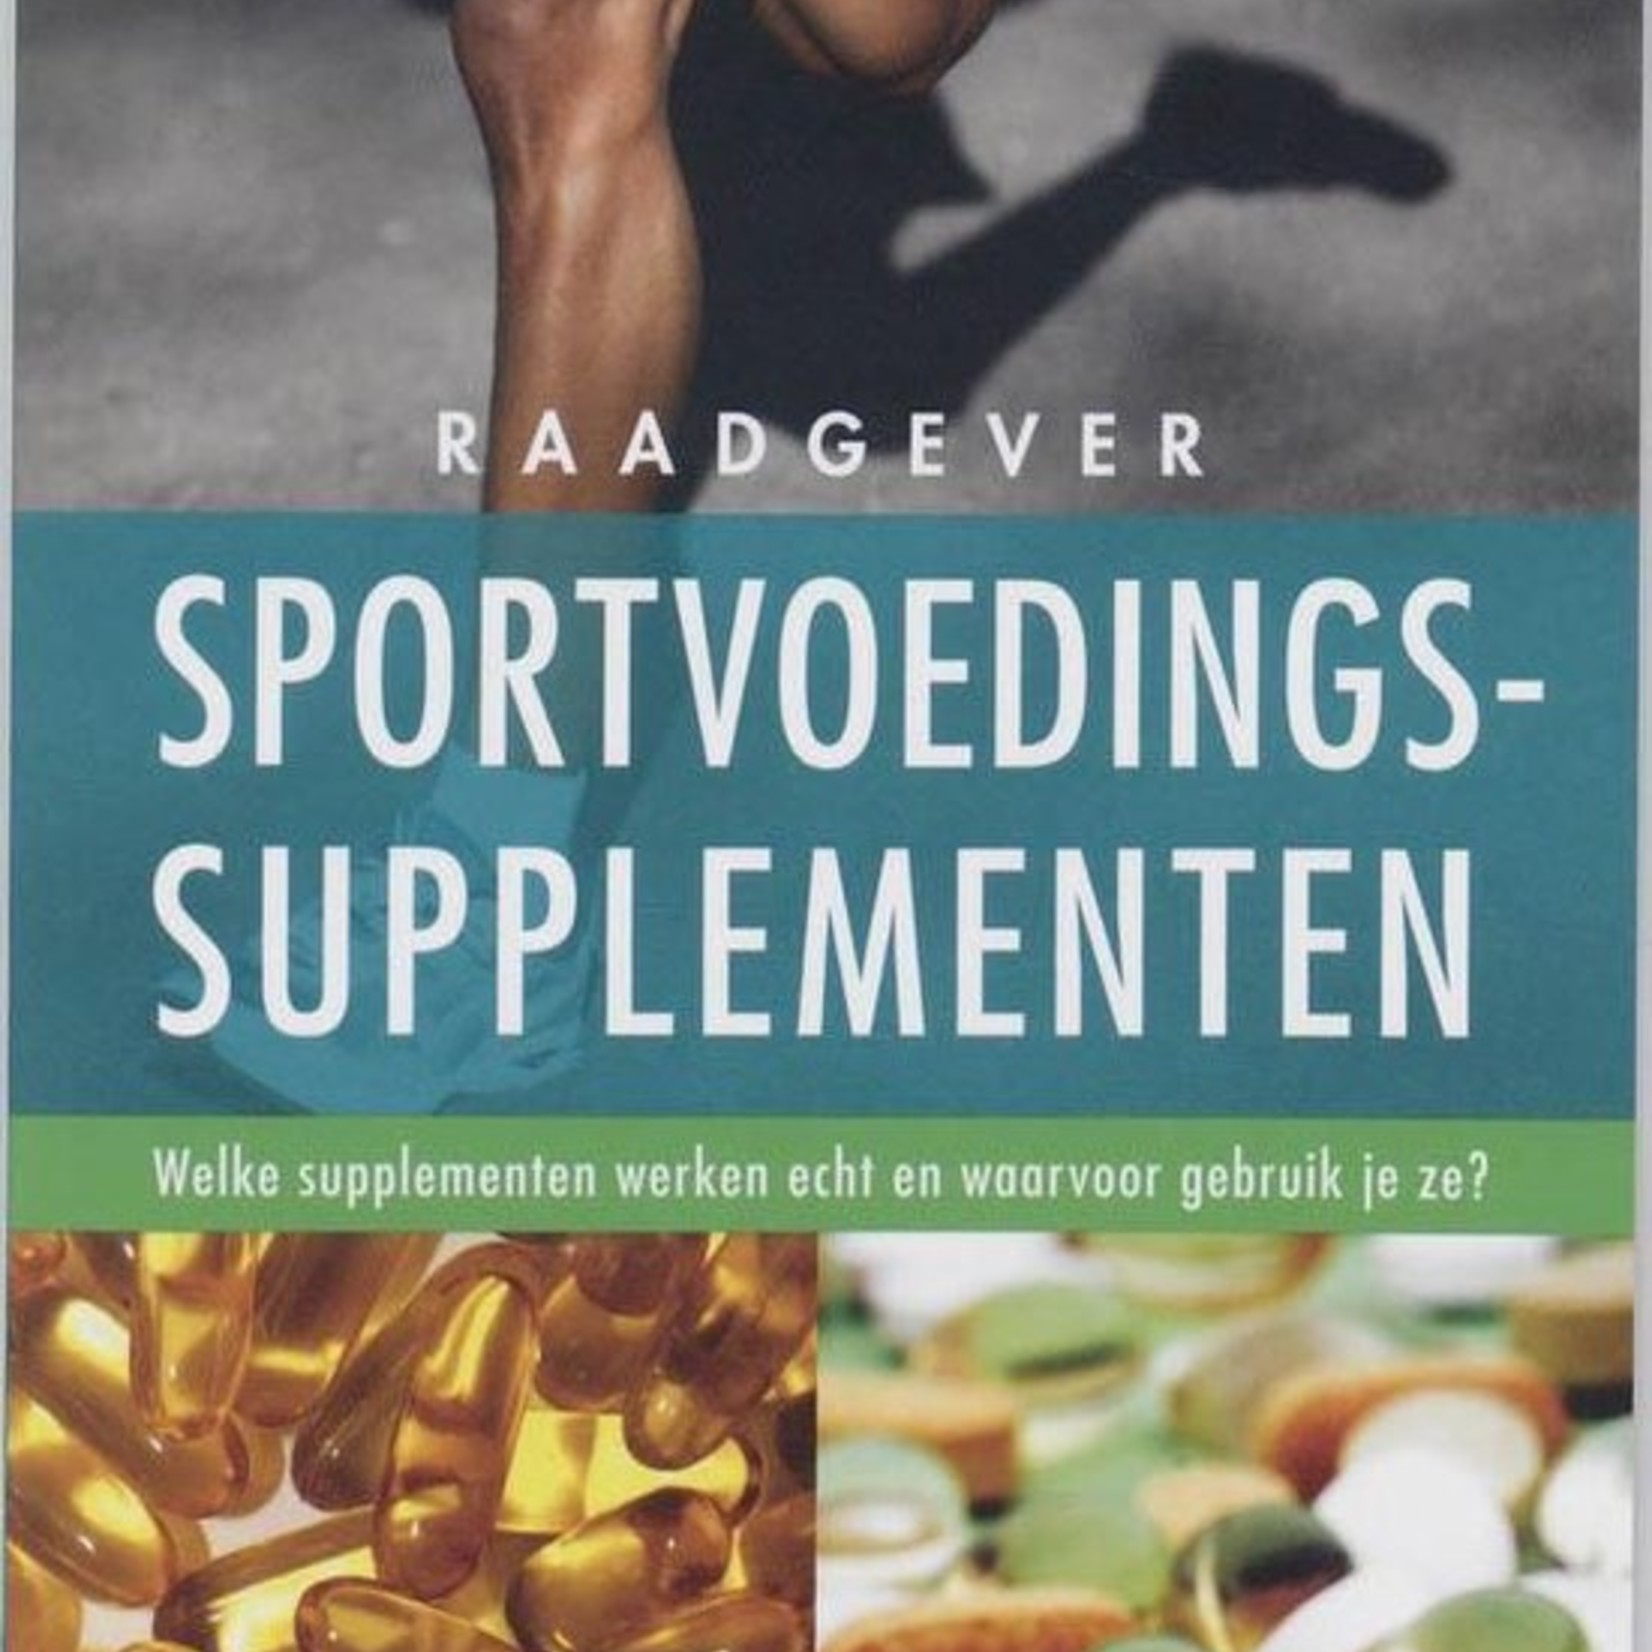 Book 'Sportvoedingssupplementen'